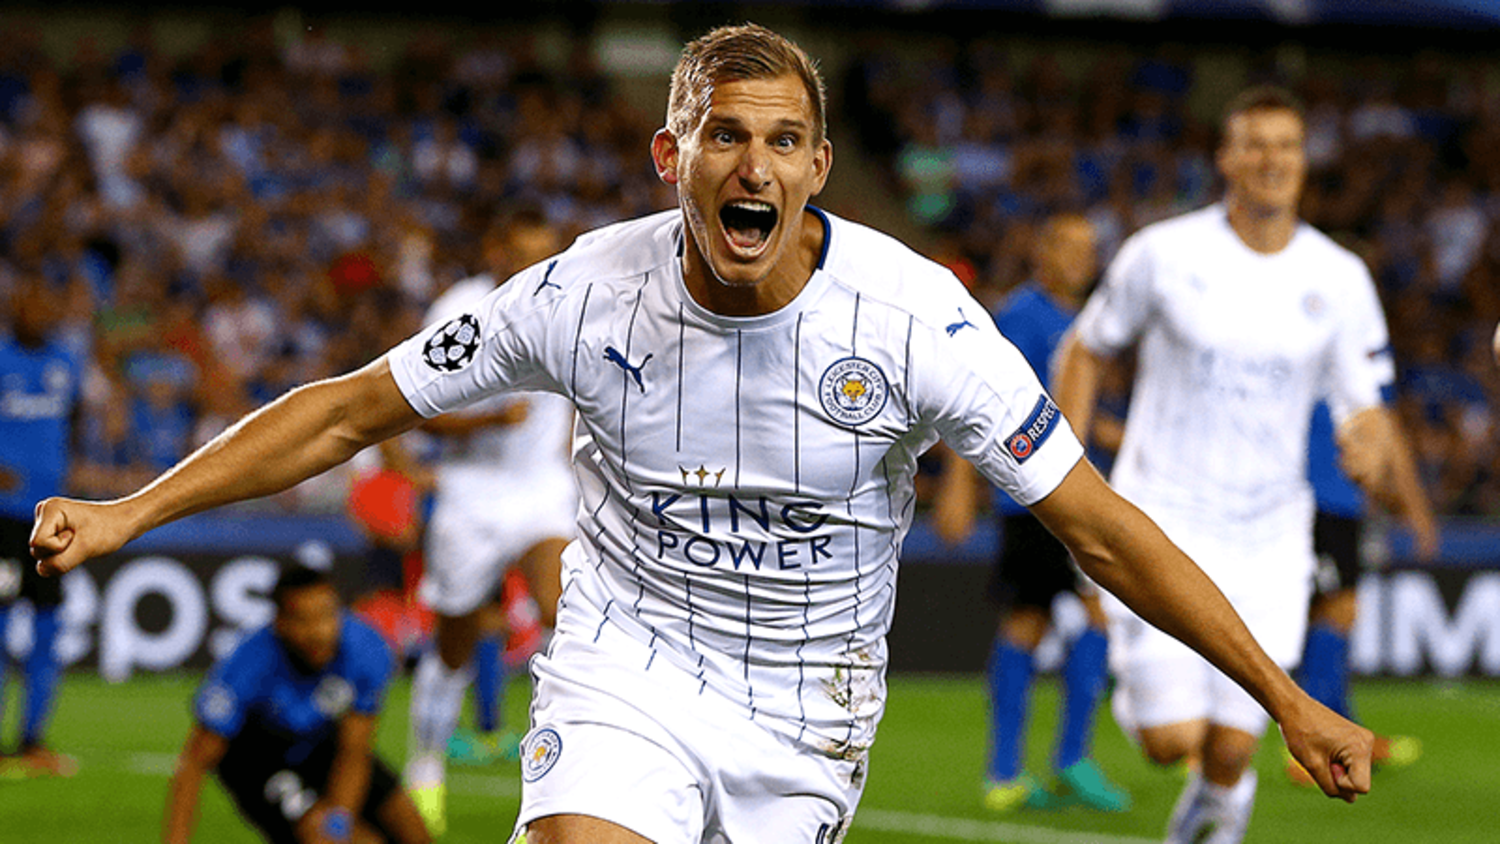 Marc Albrighton: From Aston Villa Reject to Champions League Goalscorer